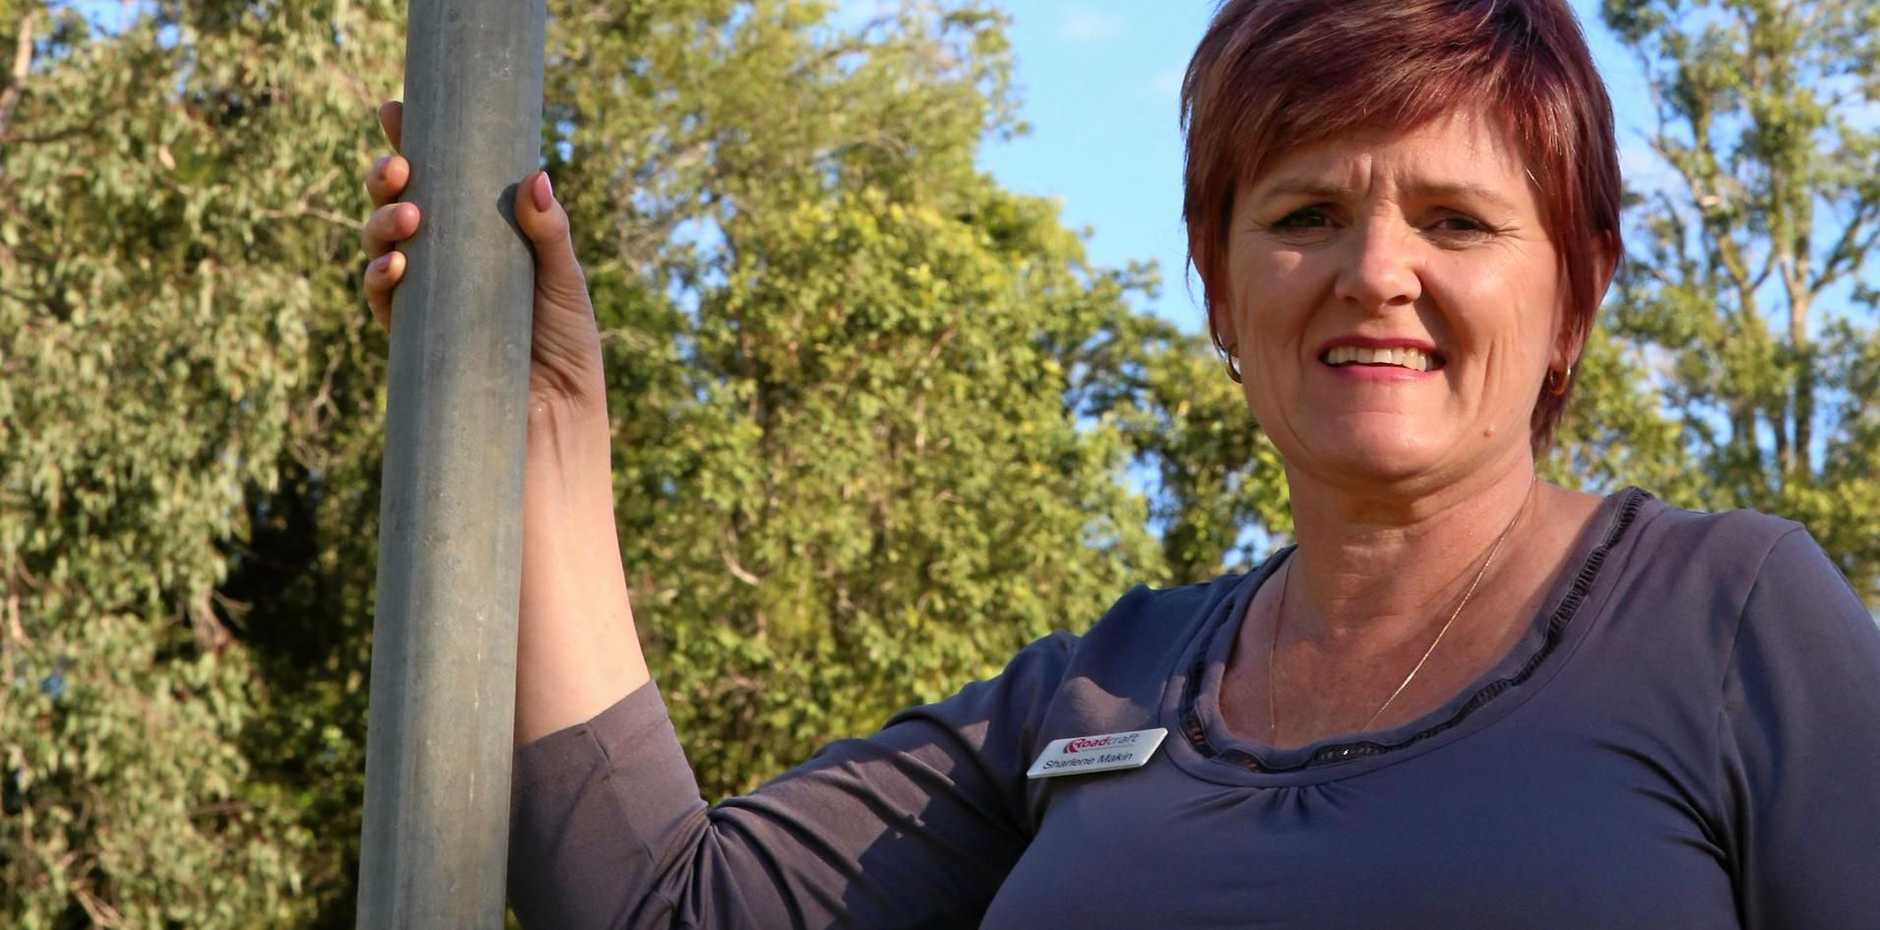 CUT OFF: Roadcraft chief executive officer Sharlene Makin has had a terrible experience with the NBN.